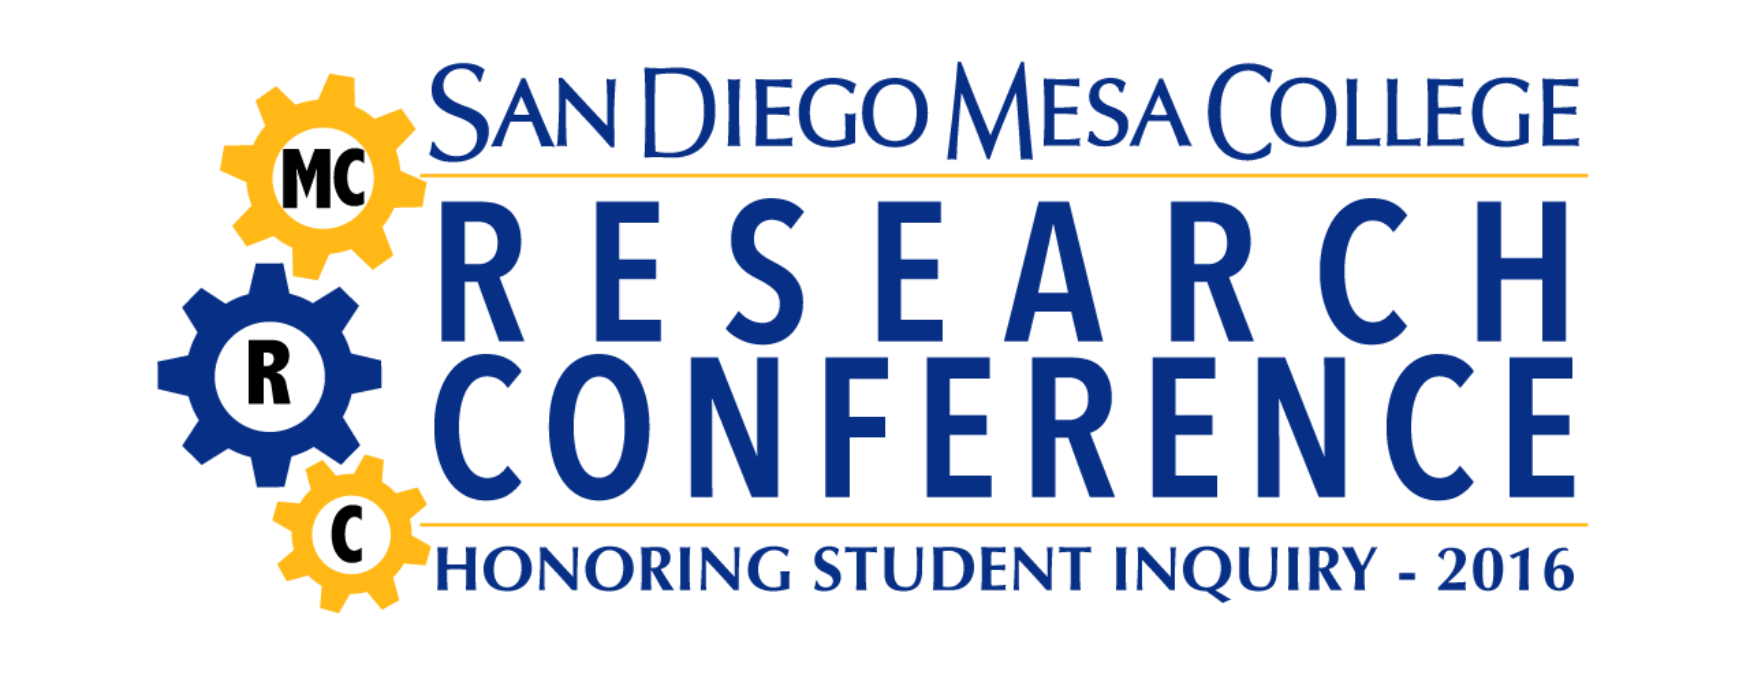 Mesa College Research Conference 2016 - San Diego Mesa College